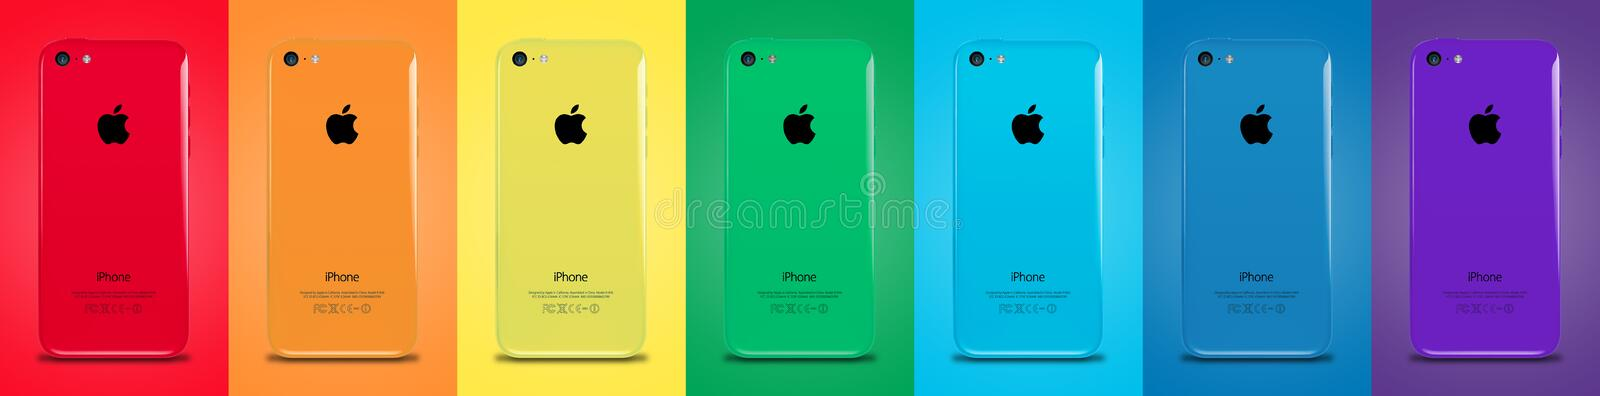 Iphone 5s royalty ilustracja